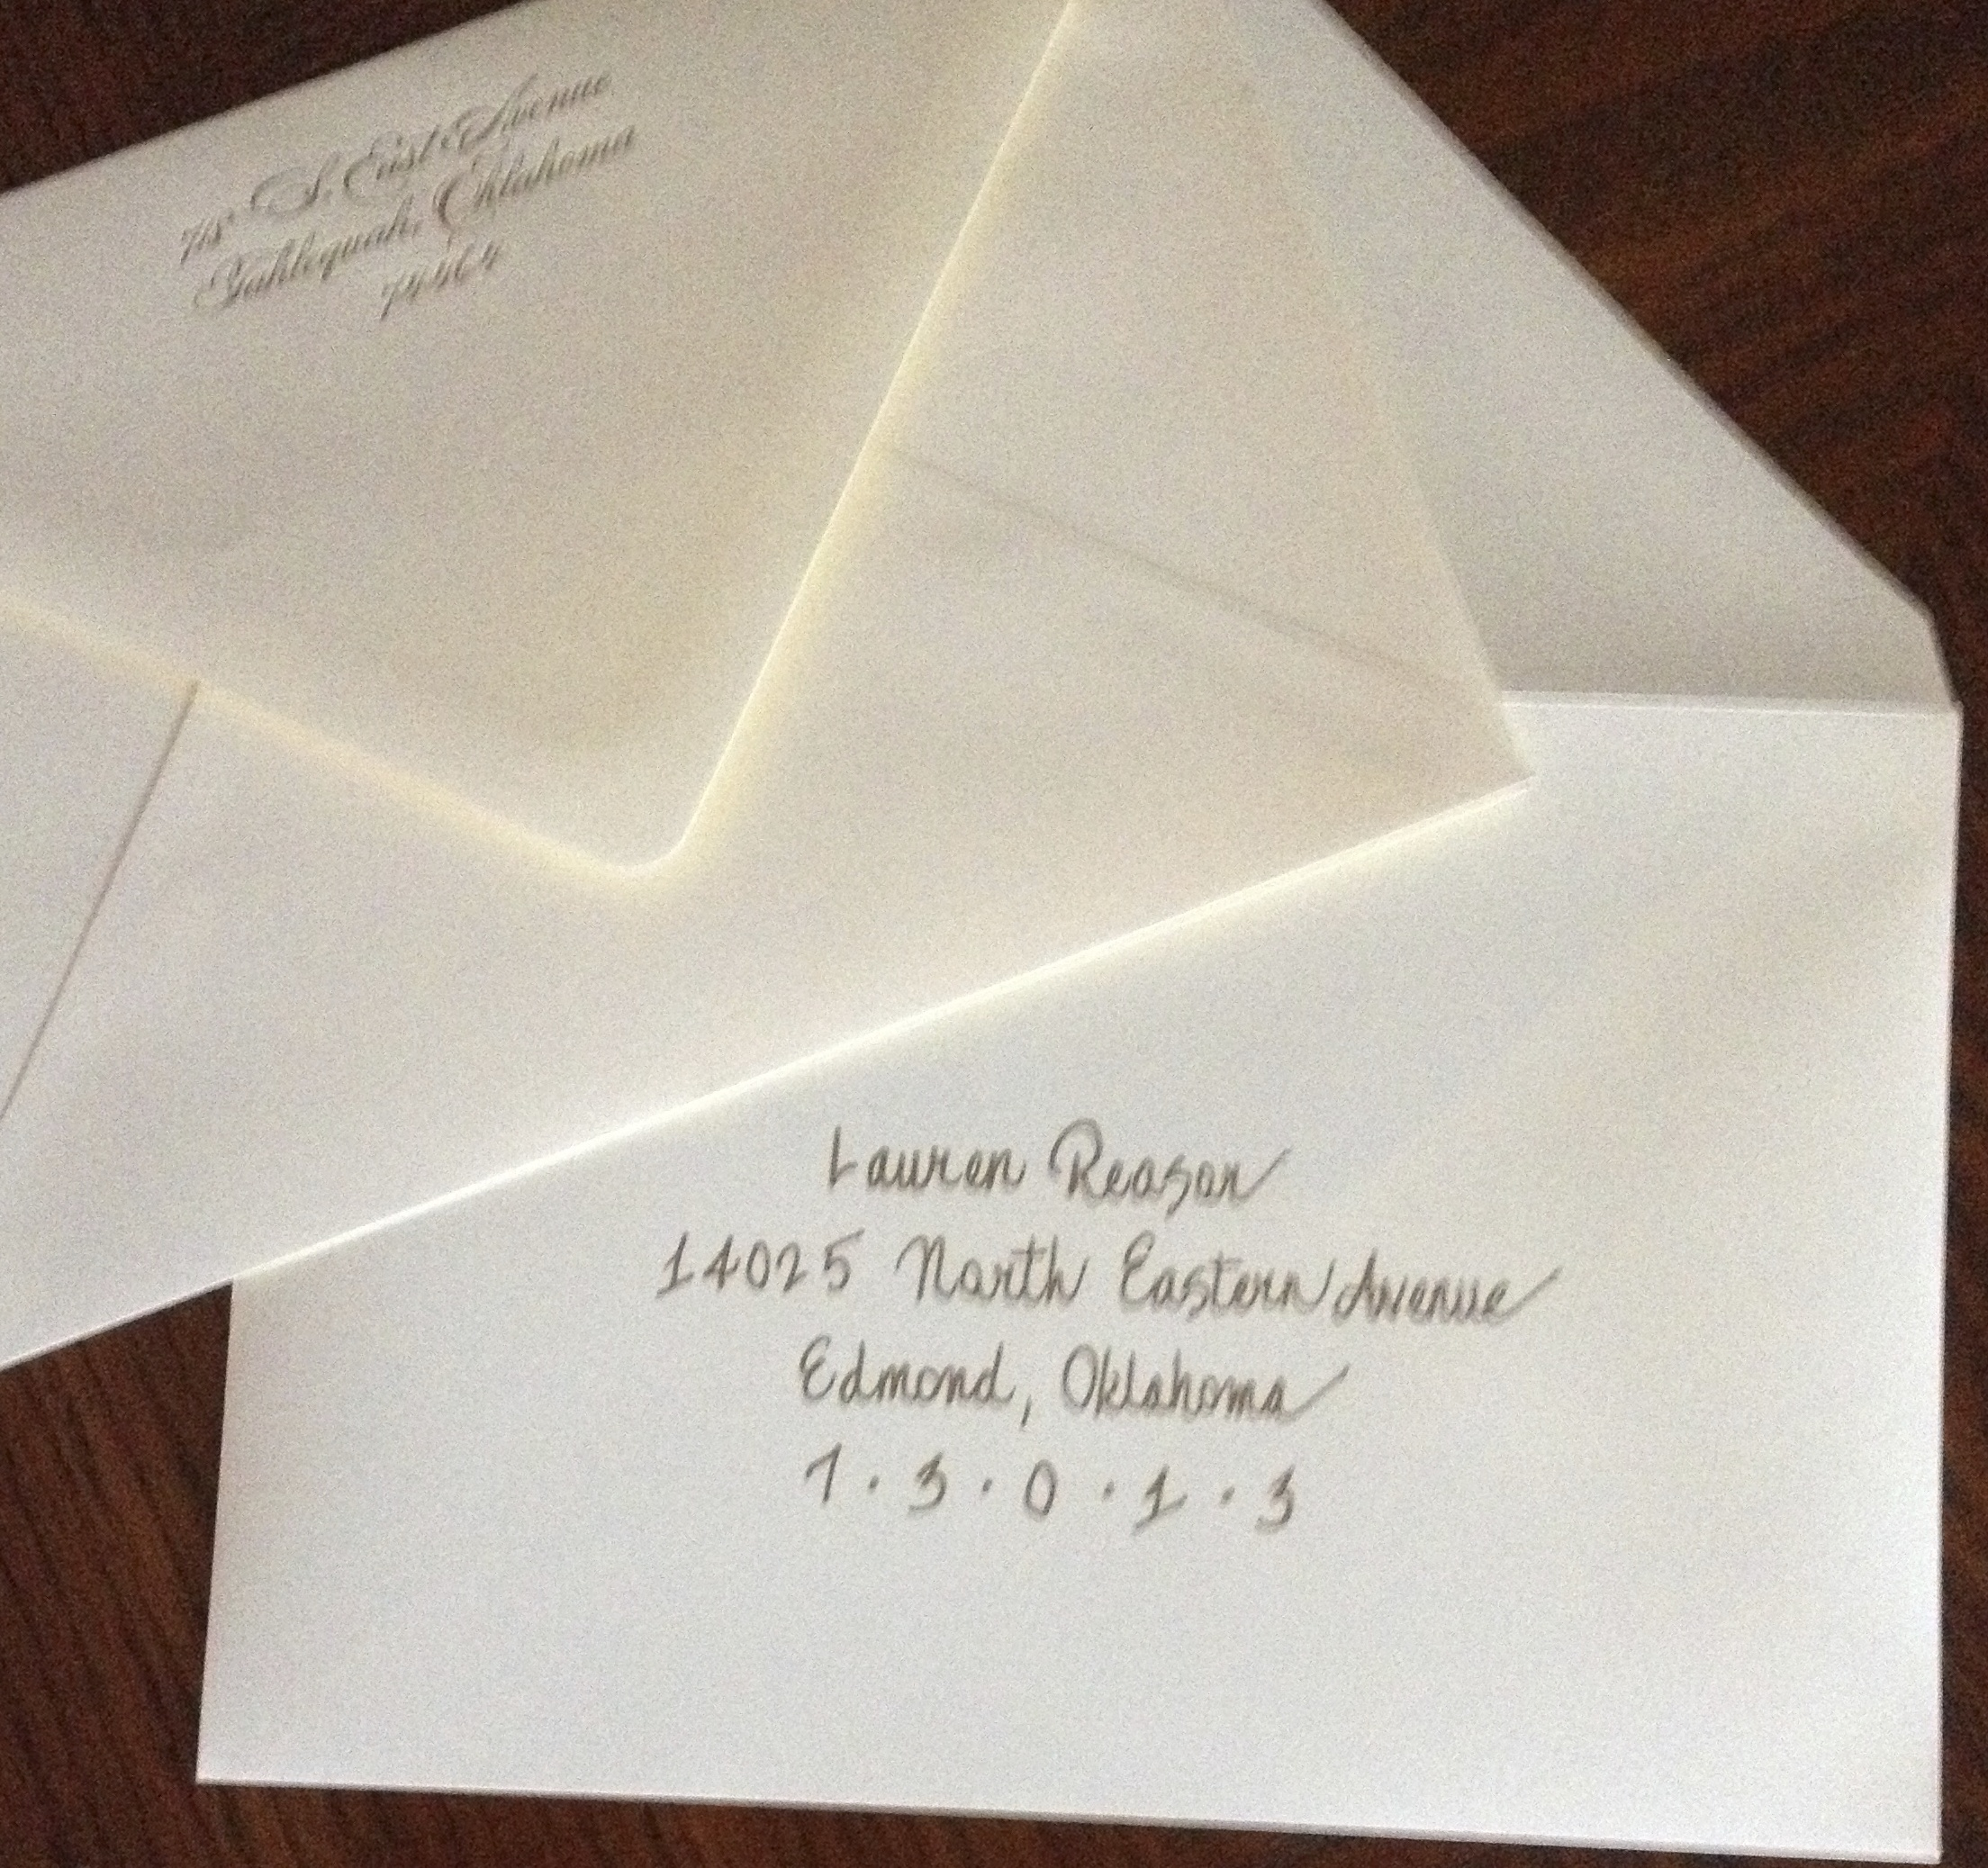 Lauren Reasor Wedding Invitation Proof.jpg